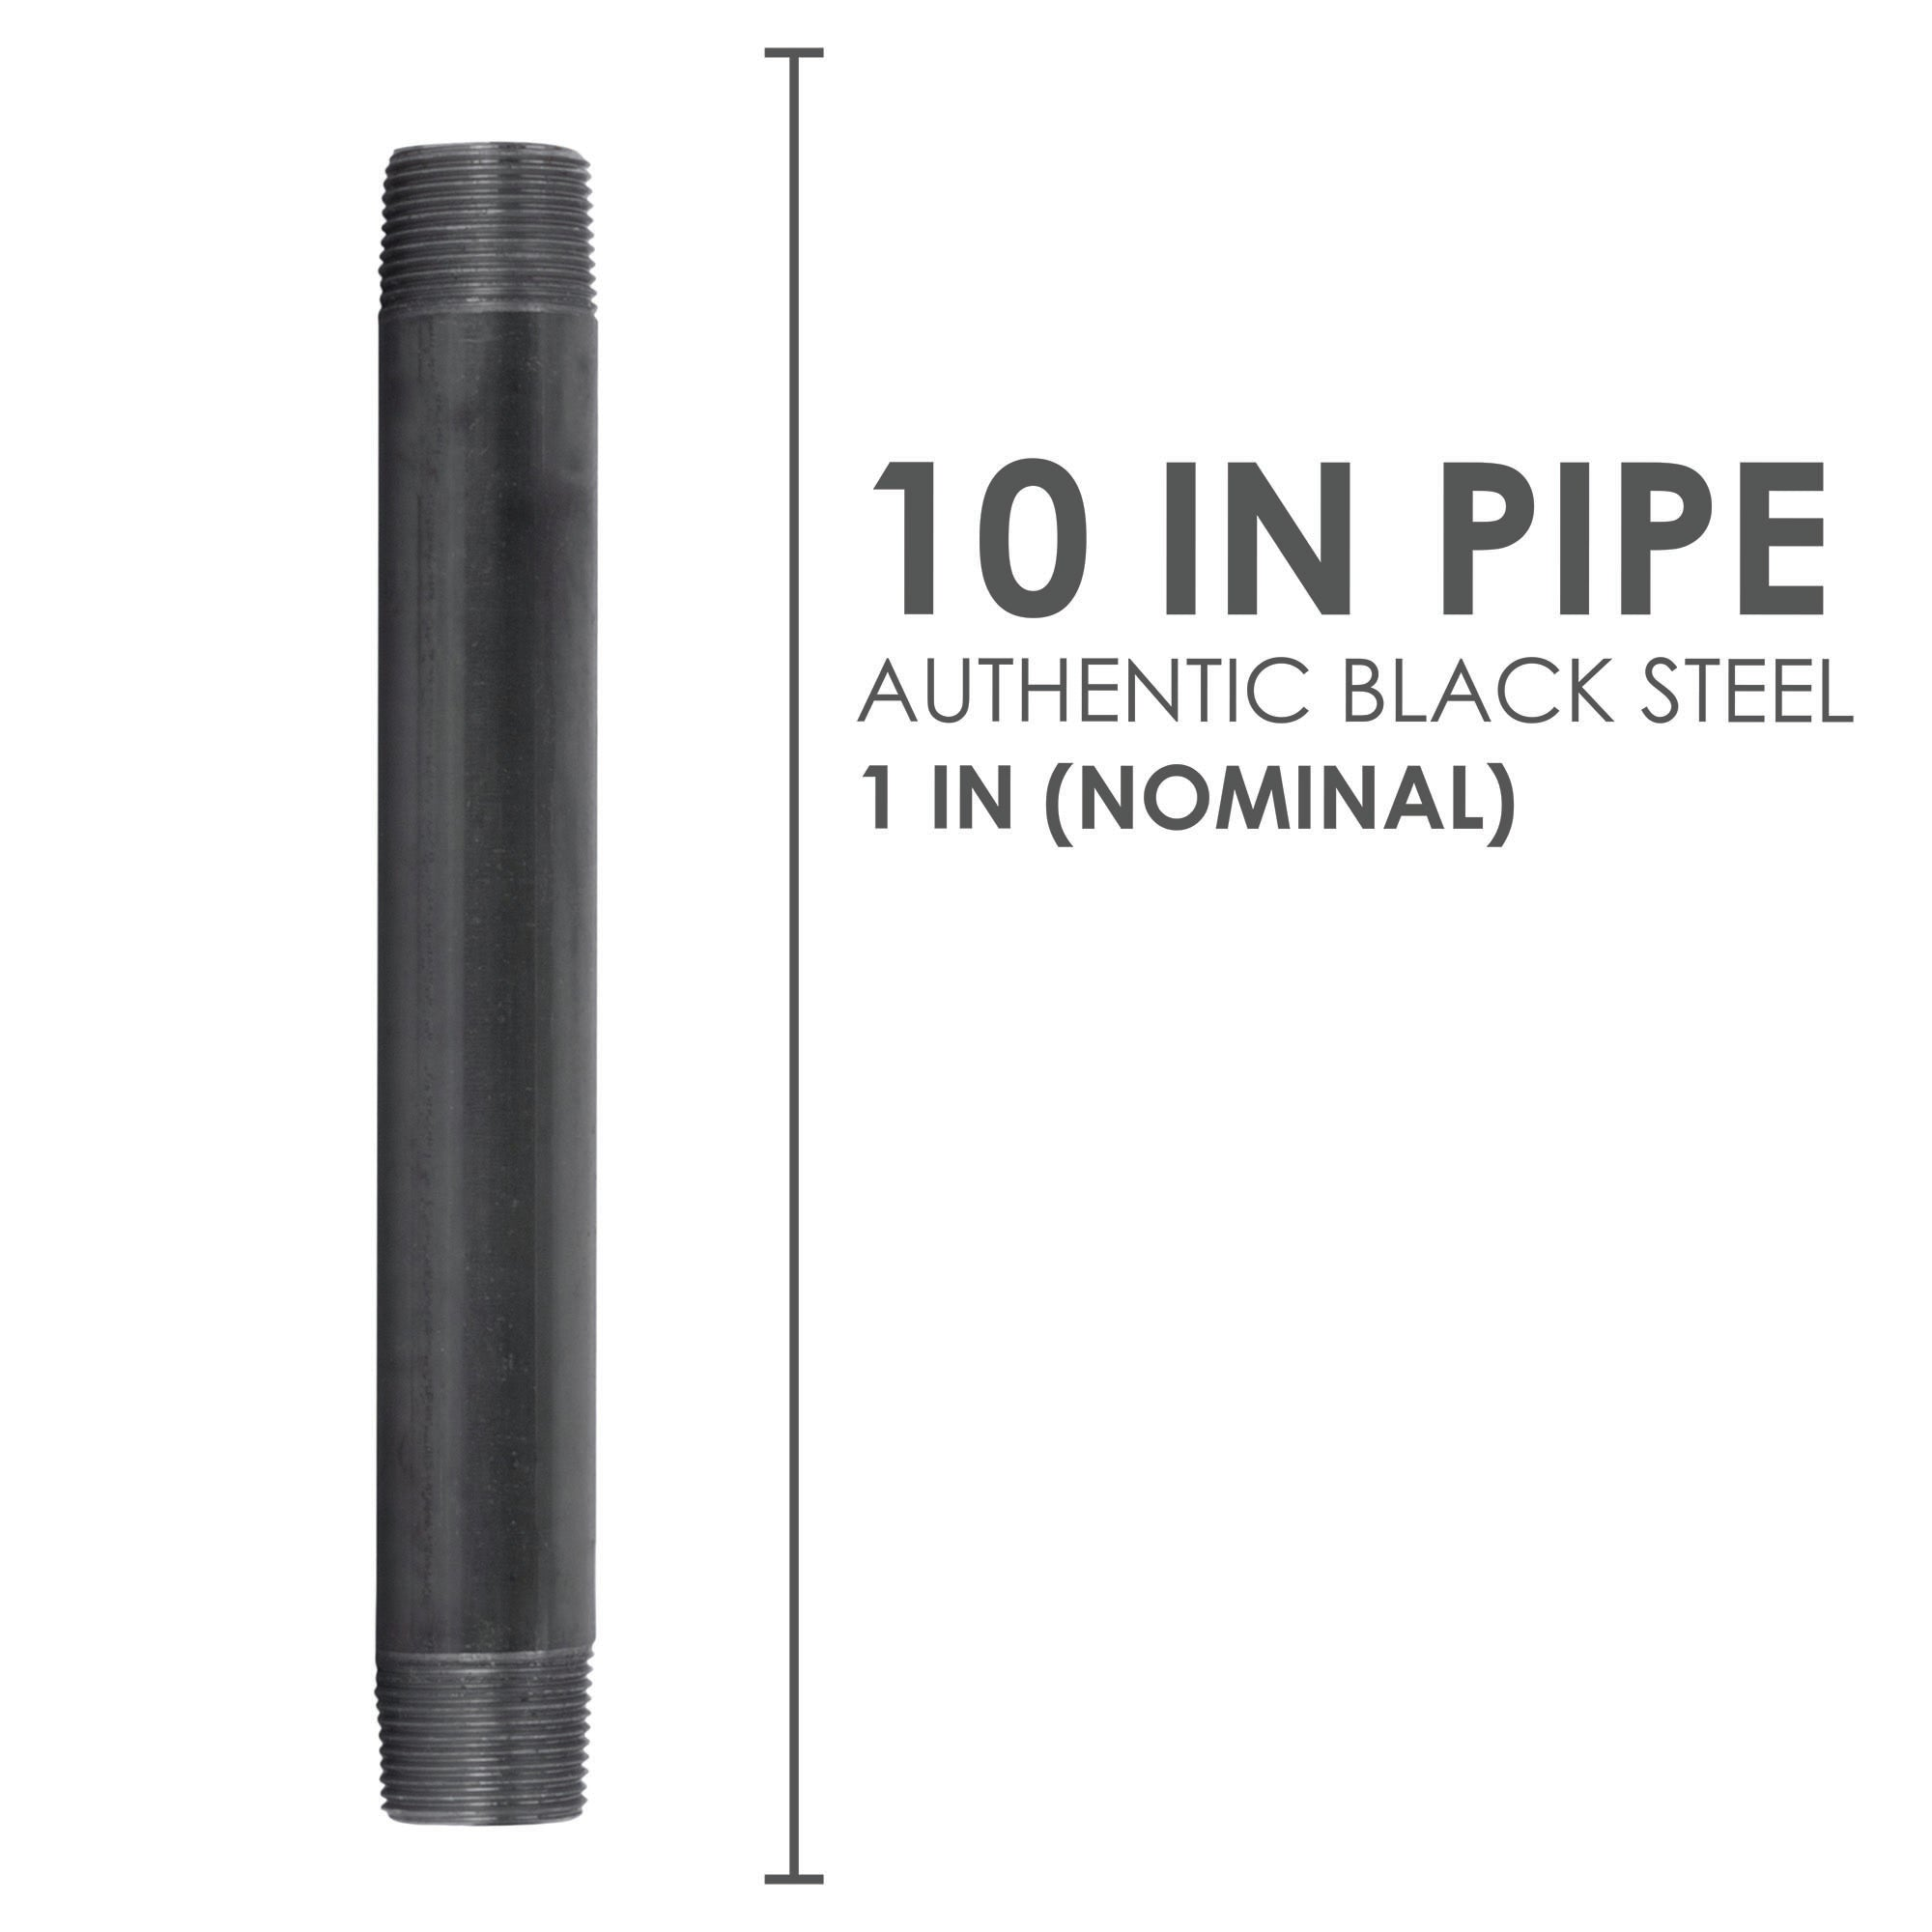 1 In X 10 In Black Pipe - Pipe Decor